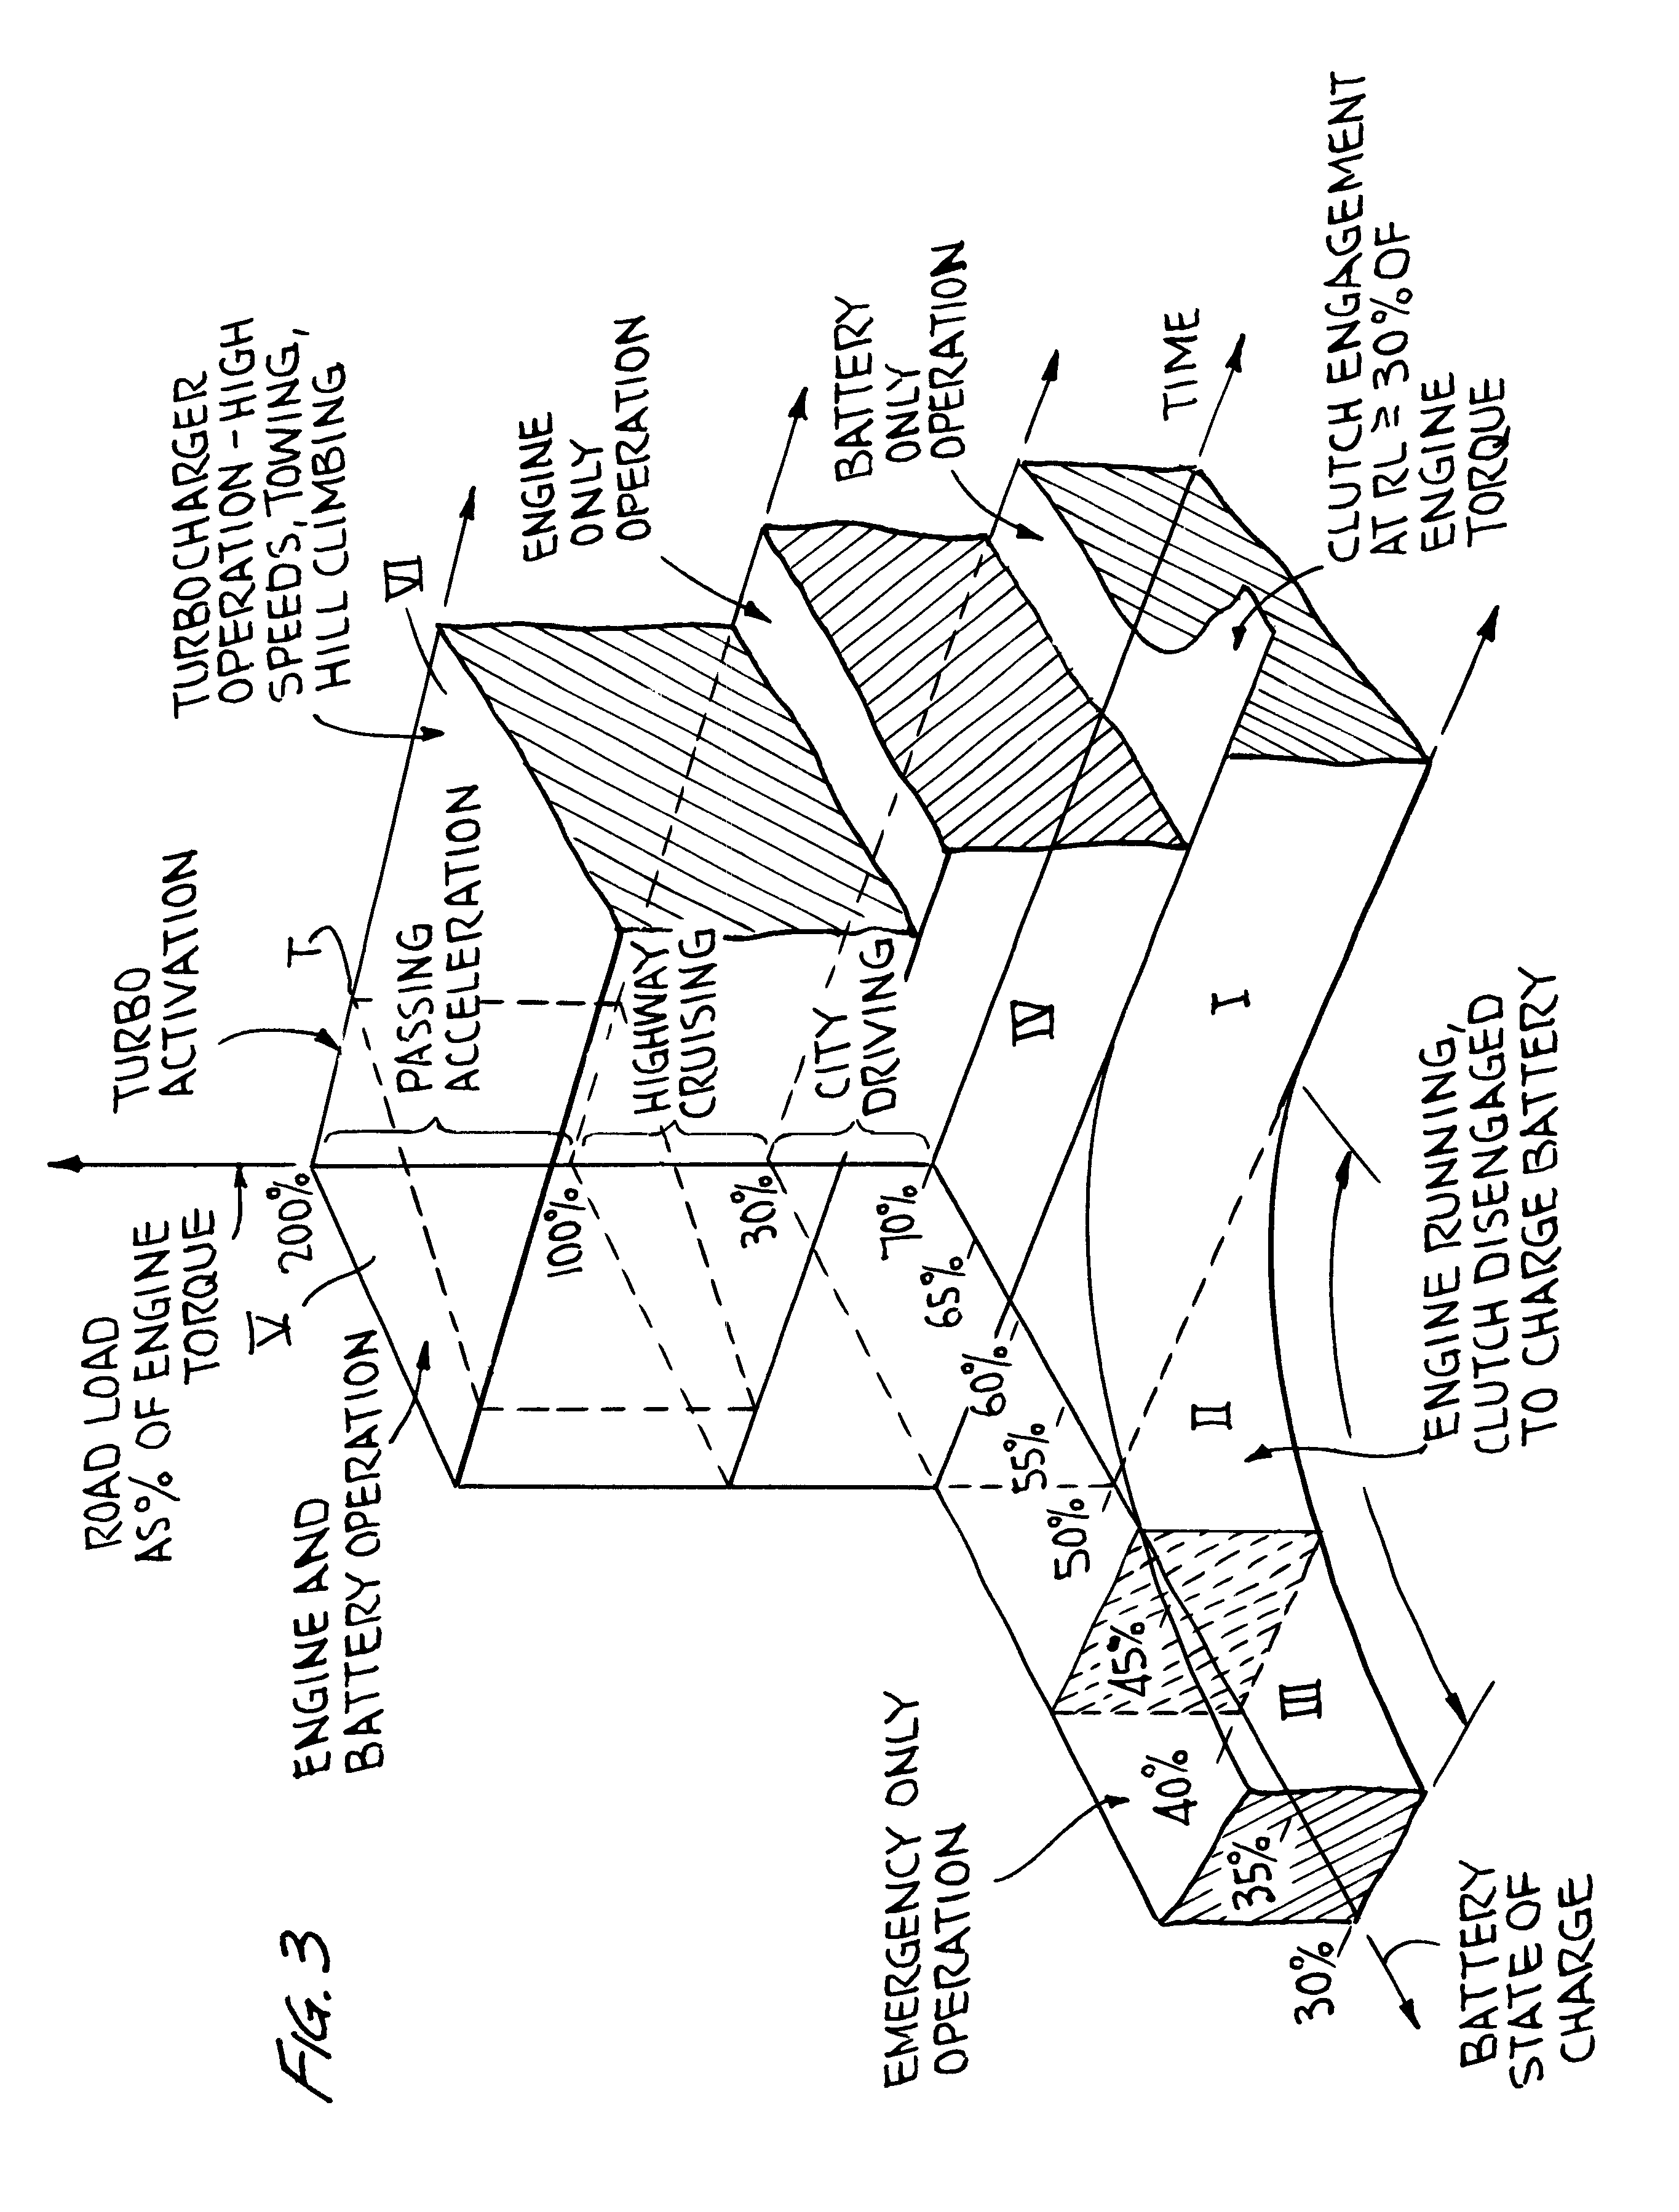 Patente Us6338391 Hybrid Vehicles Incorporating Turbochargers Engine Diagram Power Of A Train Patent Drawing